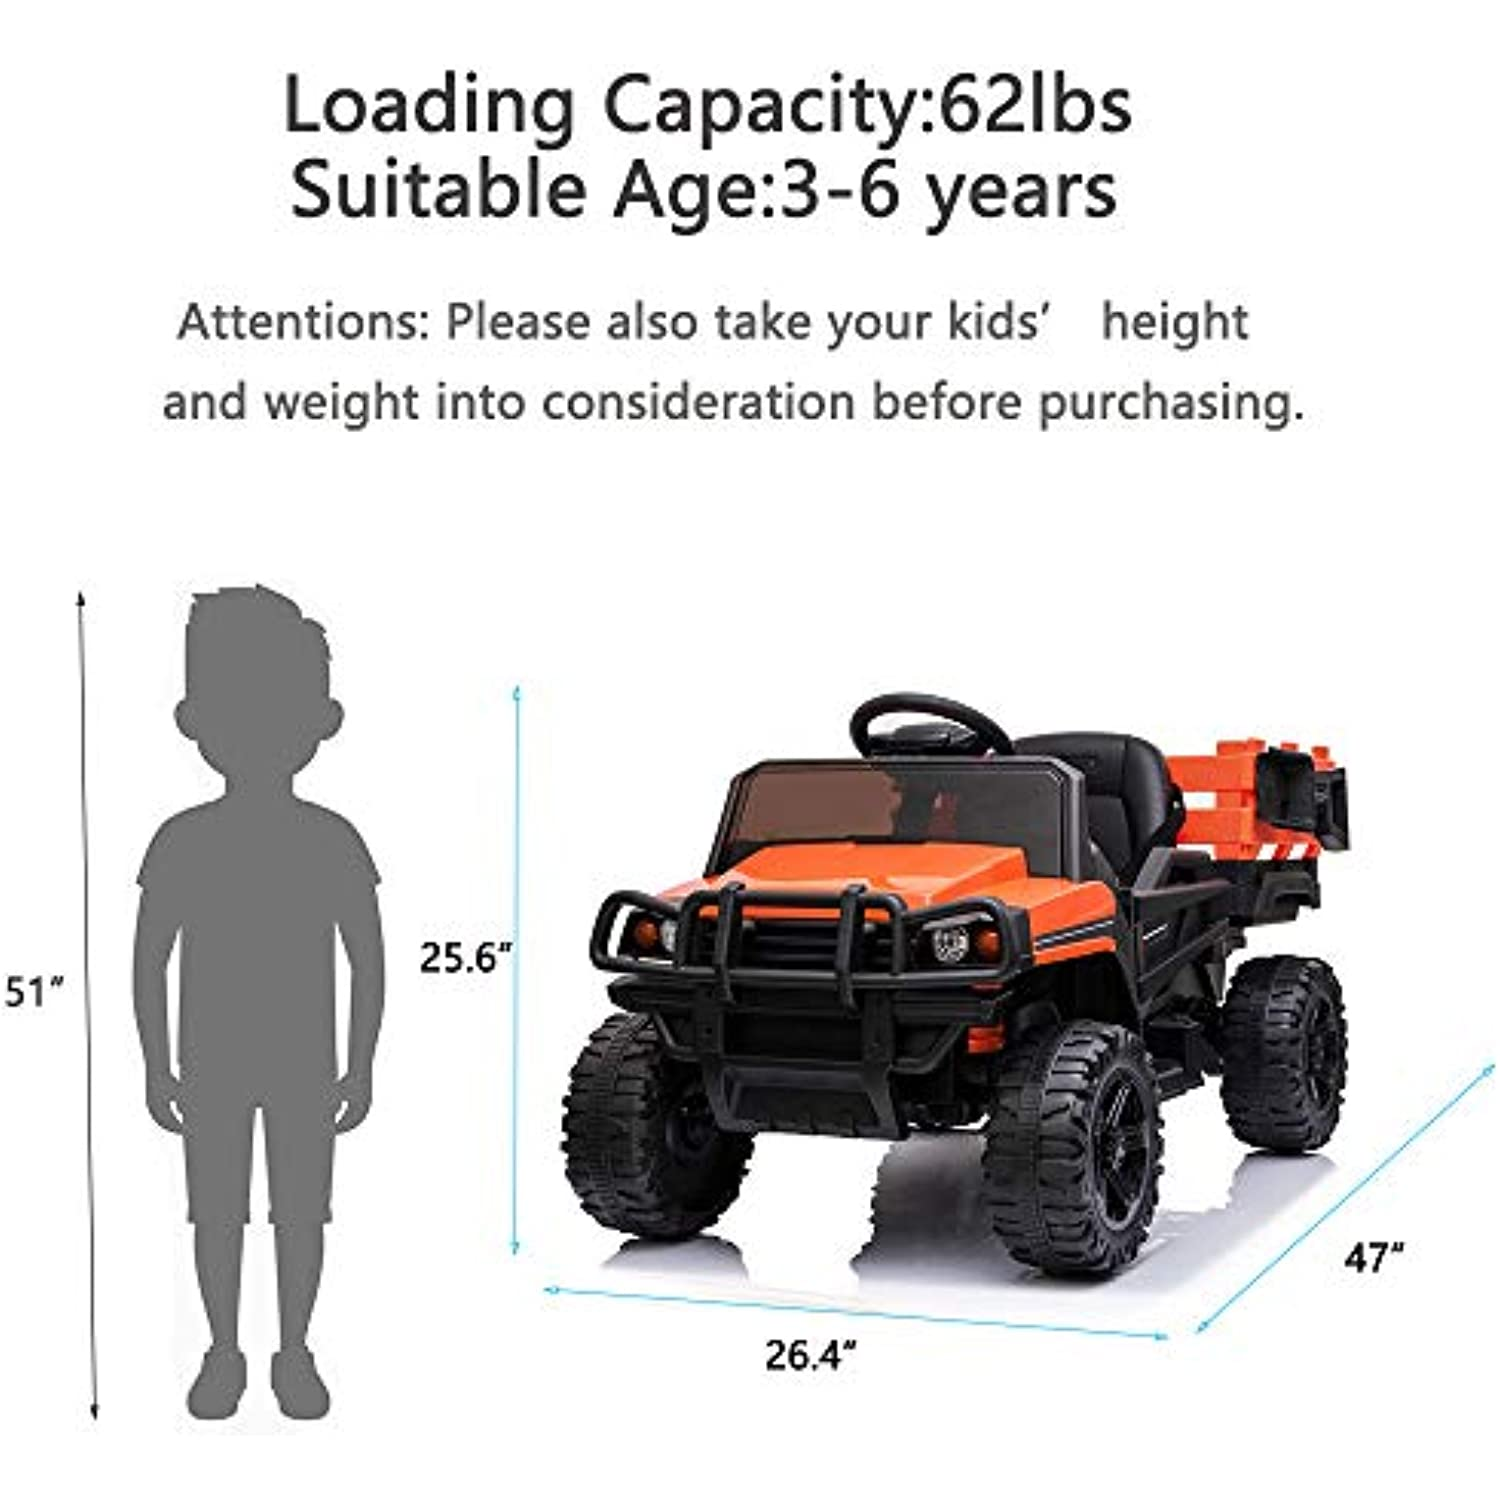 SEGMART Ride on Truck, 12V Ride on Car w/ 2.4G Parental Remote Control, Powered Electric Vehicle with LED Headlight, Horn, Safety Belt, Music, Forward Backward, MP3/ AUX/USB/FM for Kids